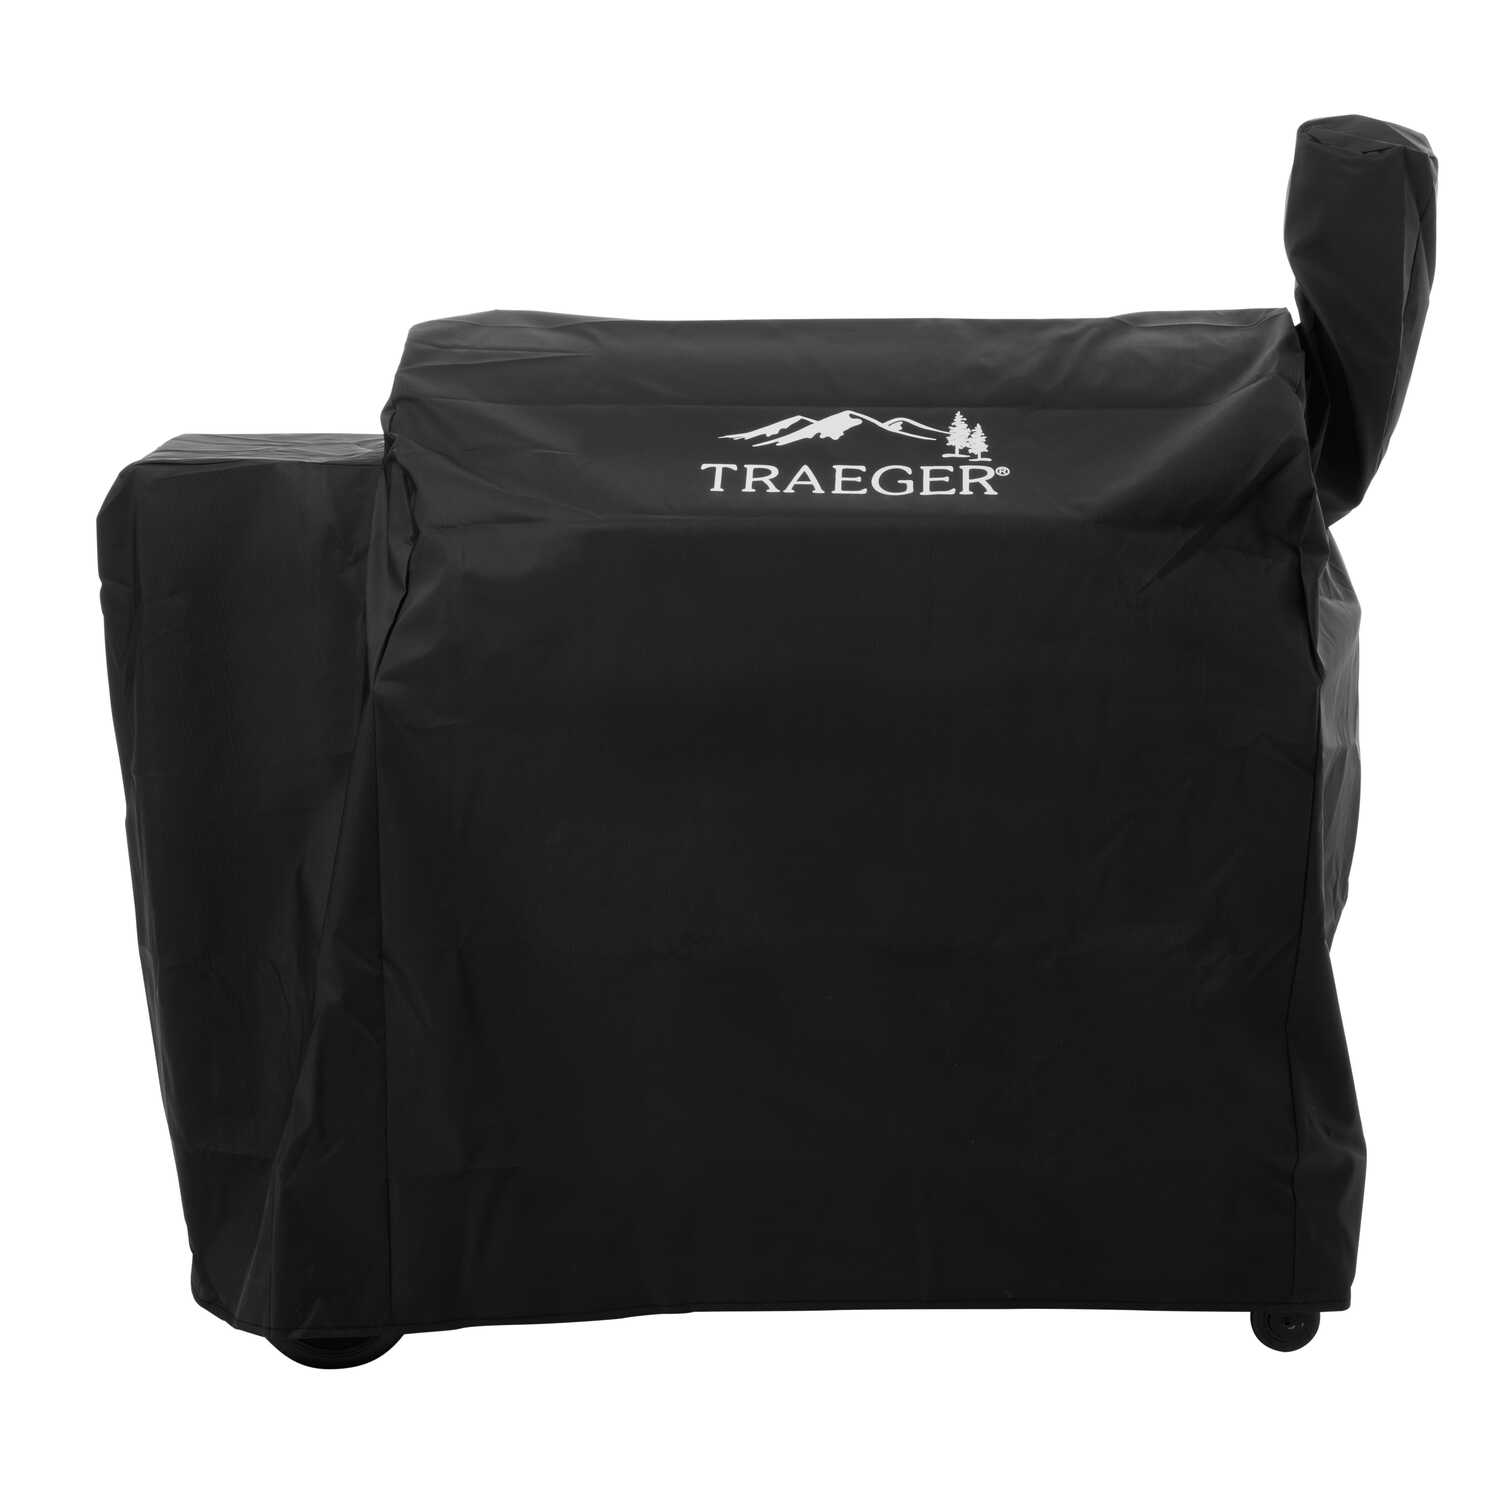 Traeger  Series 34  Black  Grill Cover  22 in. W x 39 in. H x 49 in. D For 34 Series/TexasGrills